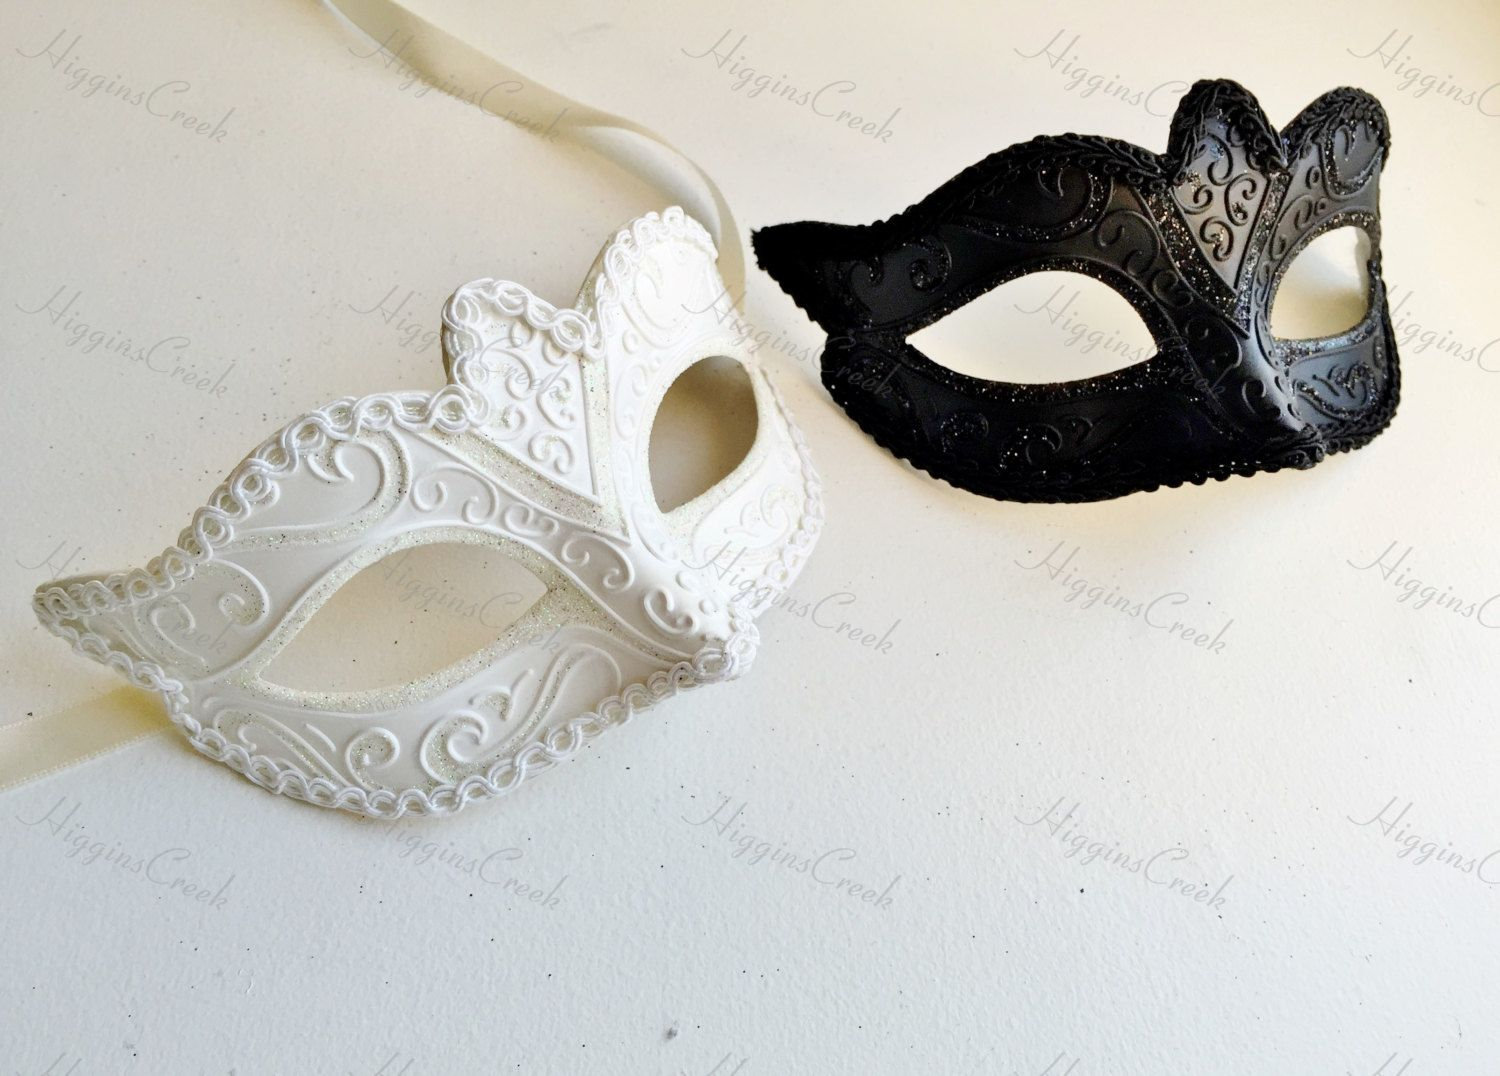 Masquerade mask masquerade mask vine mask metal lace masquerade - White And Black Masquerade Masks For Couples Venetian Masks Mens Masquerade Mask Womens Masquerade Mask Party Masks Black And White Mask